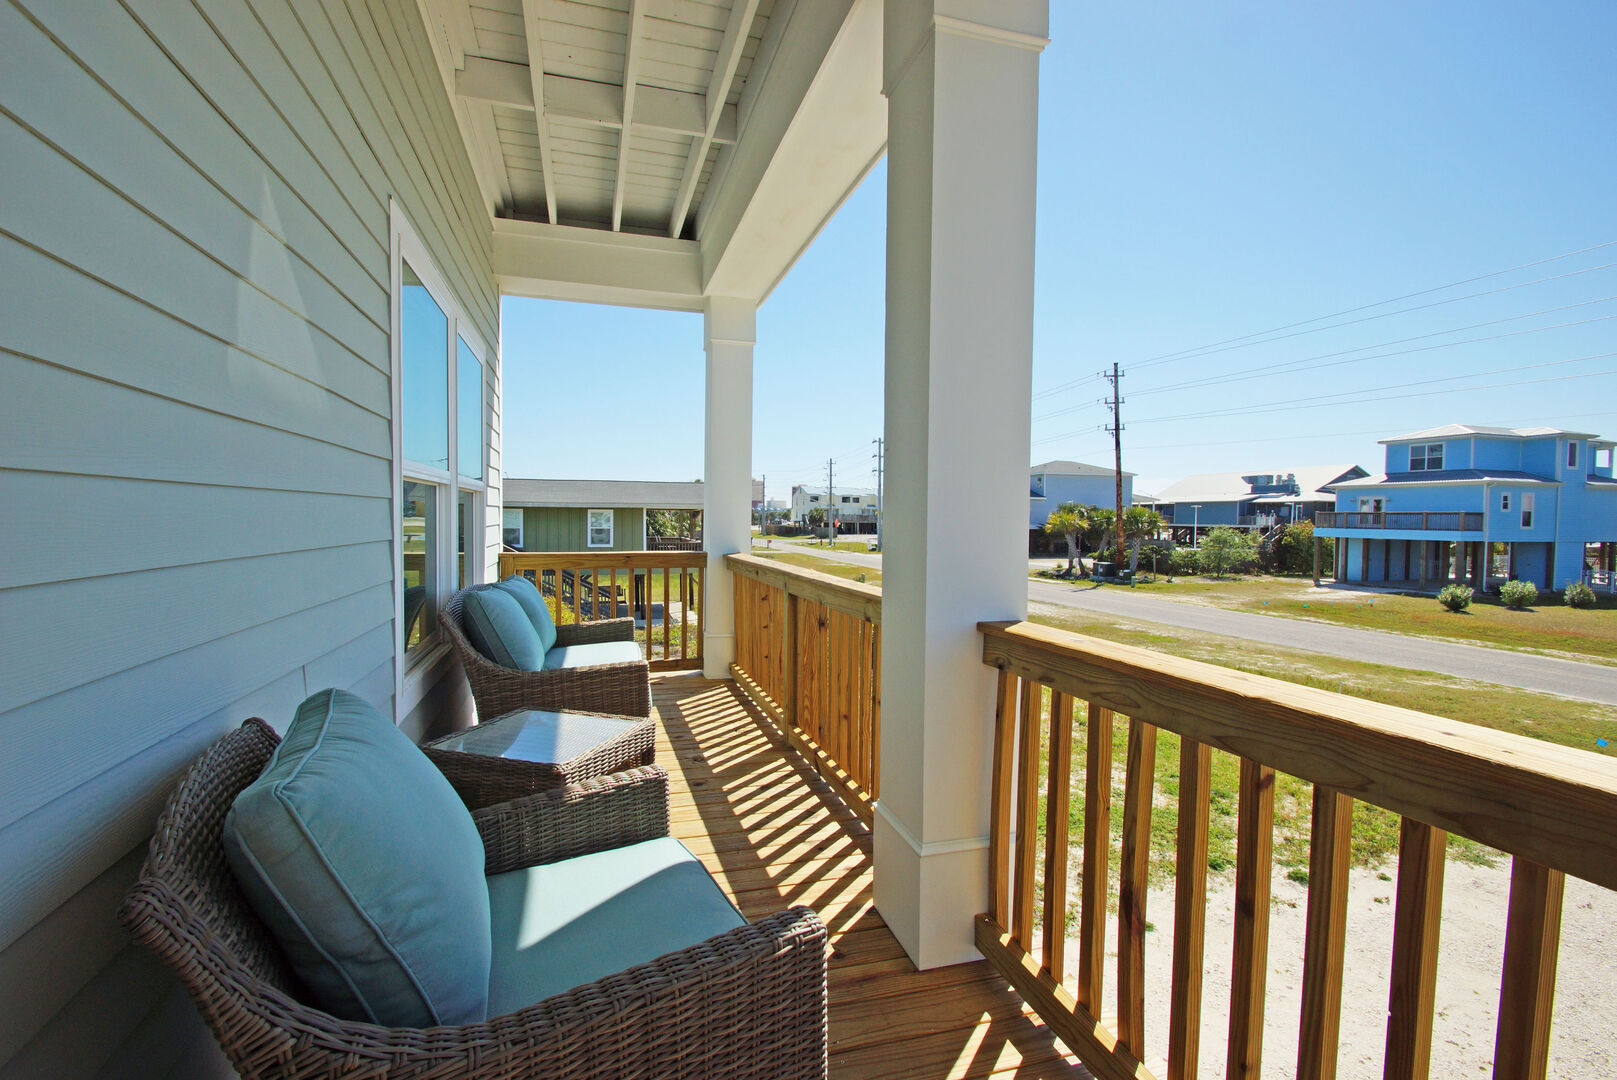 Seating on Outdoor Porch